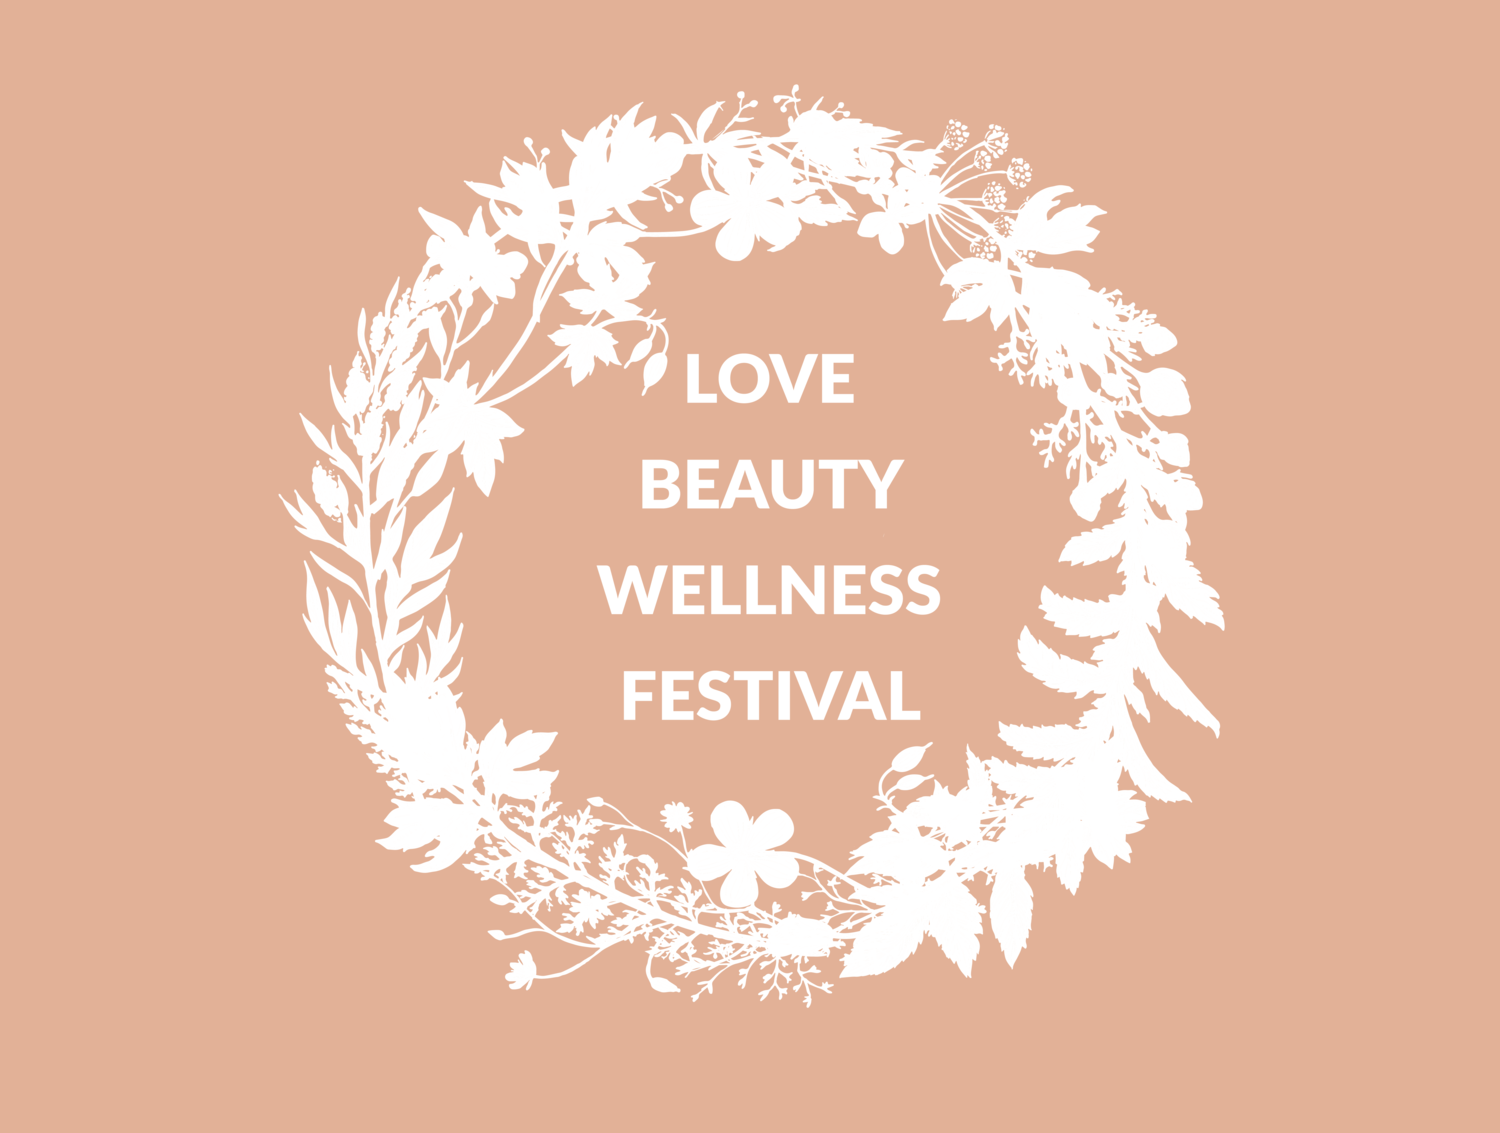 Love Beauty Wellness